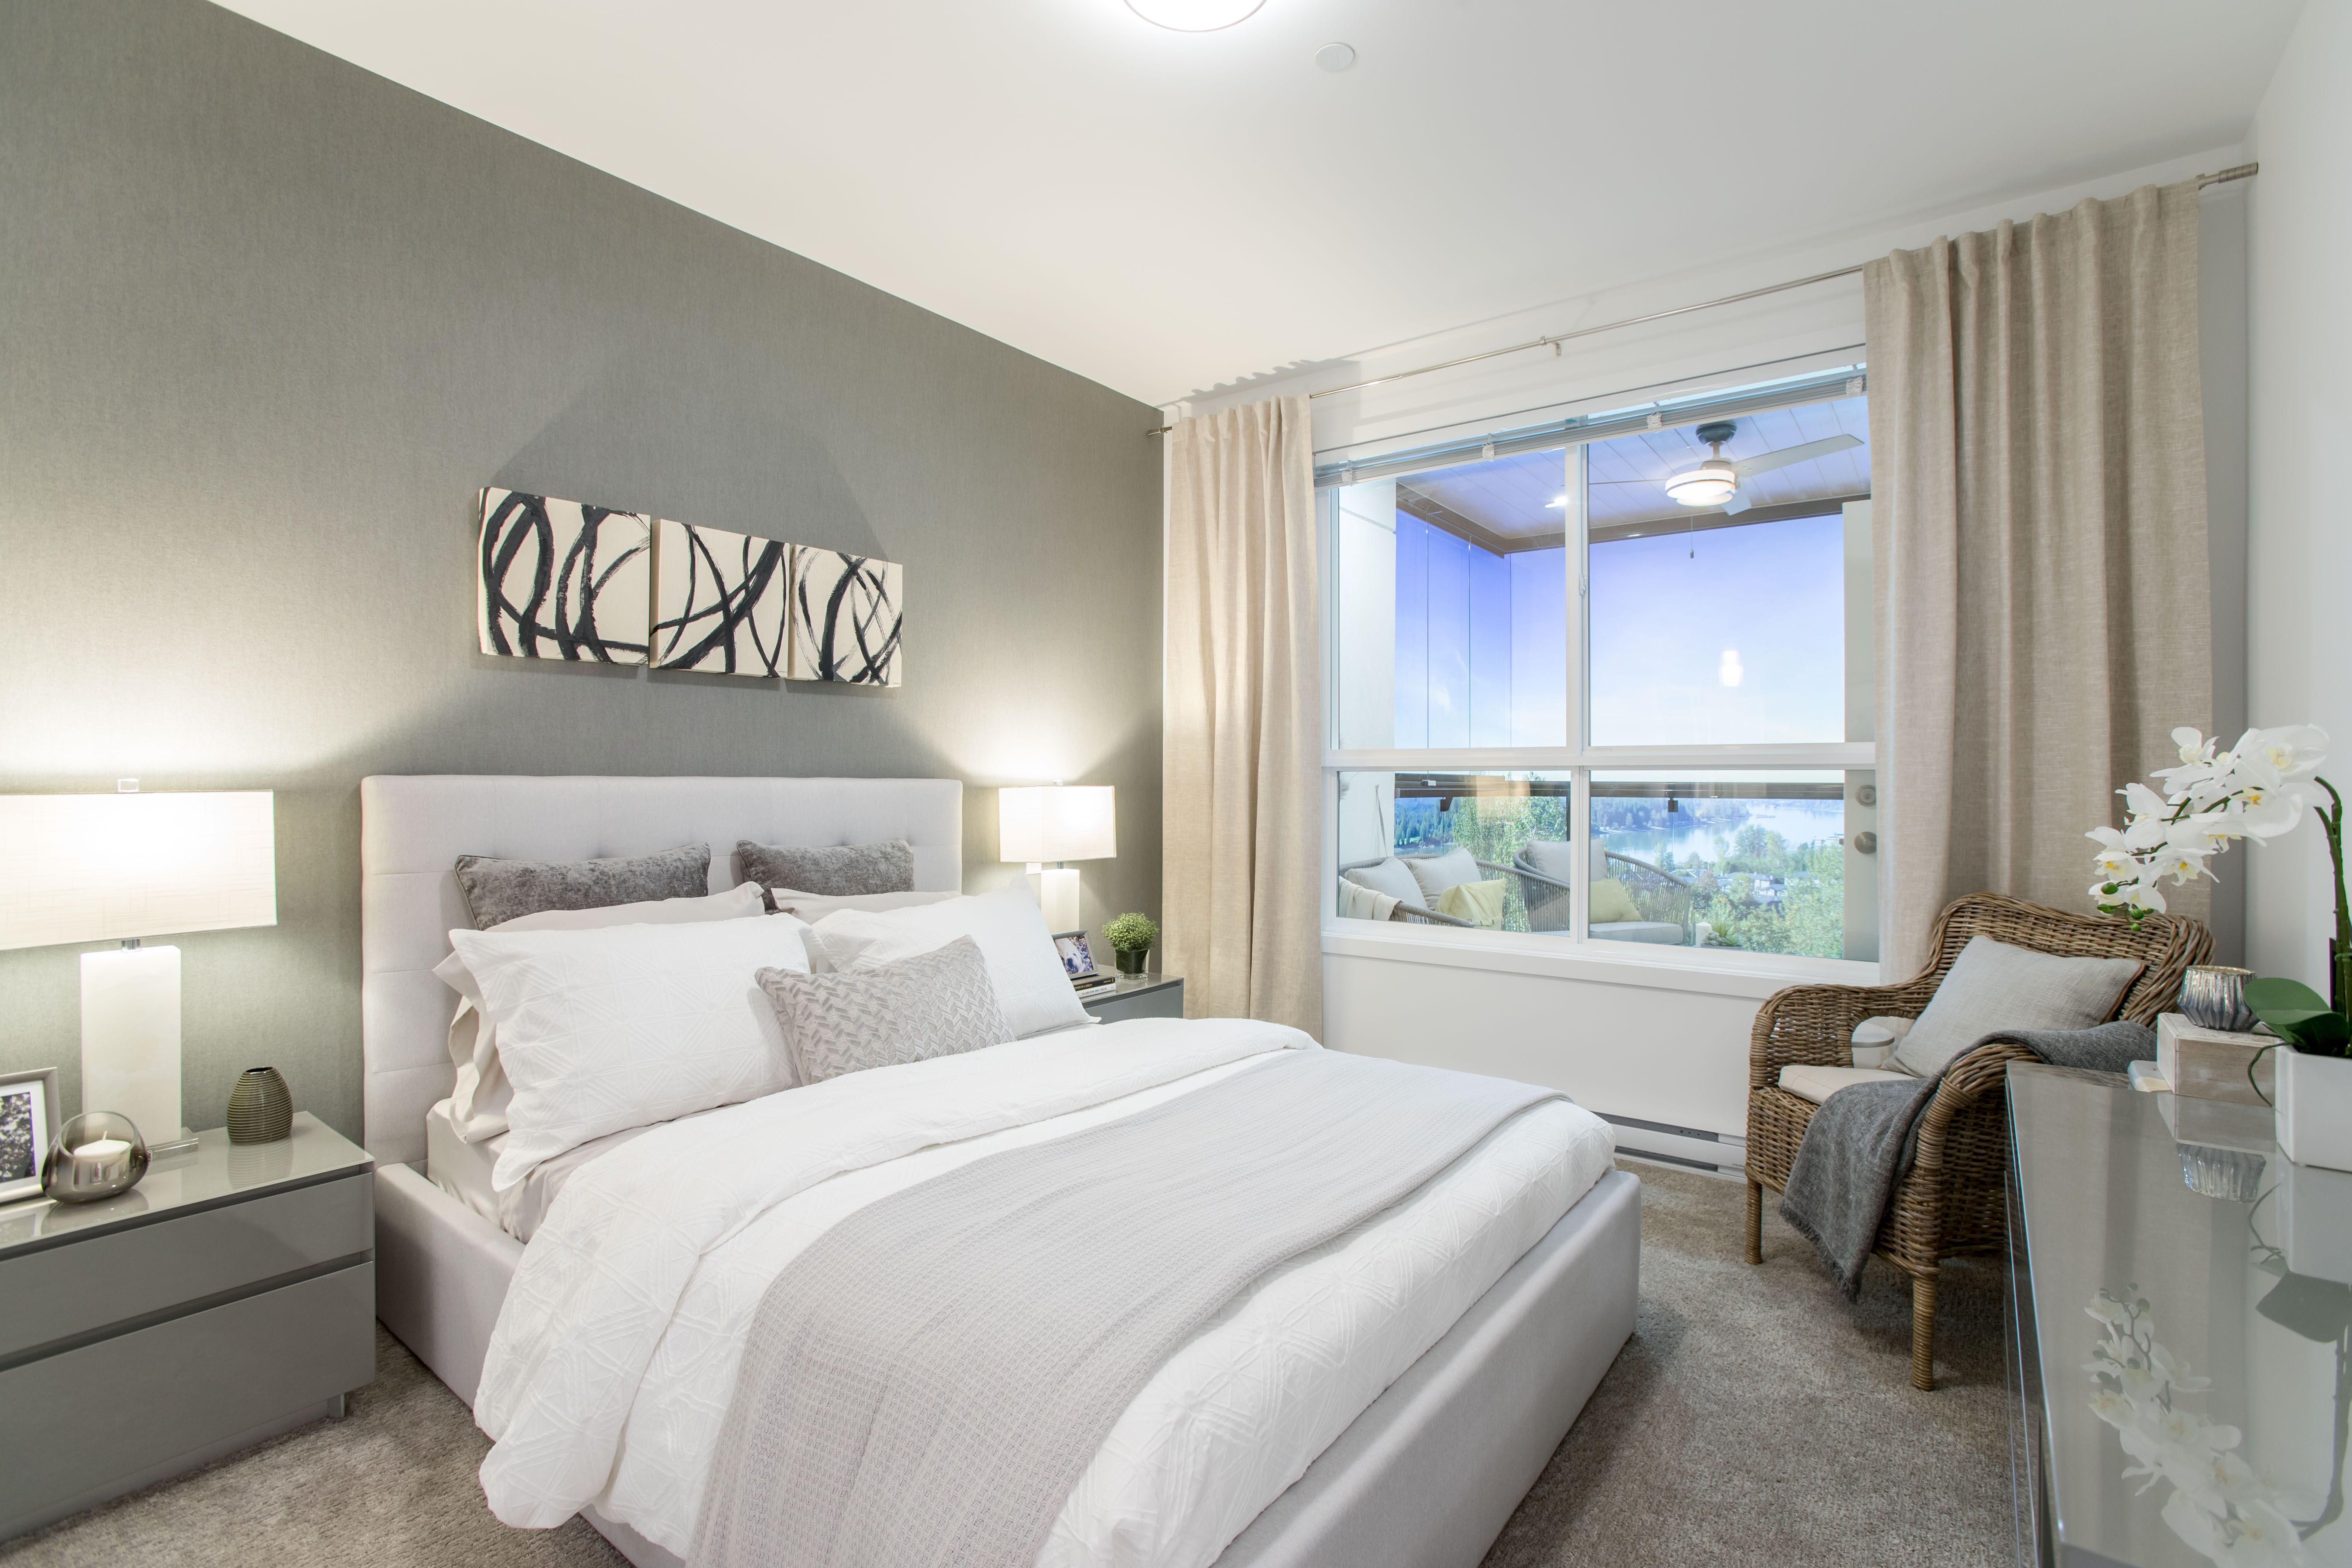 https://mk0highpointeaf8ie02.kinstacdn.com/wp-content/uploads/2019/08/Model-Home-bedroom-A45I9976.jpg